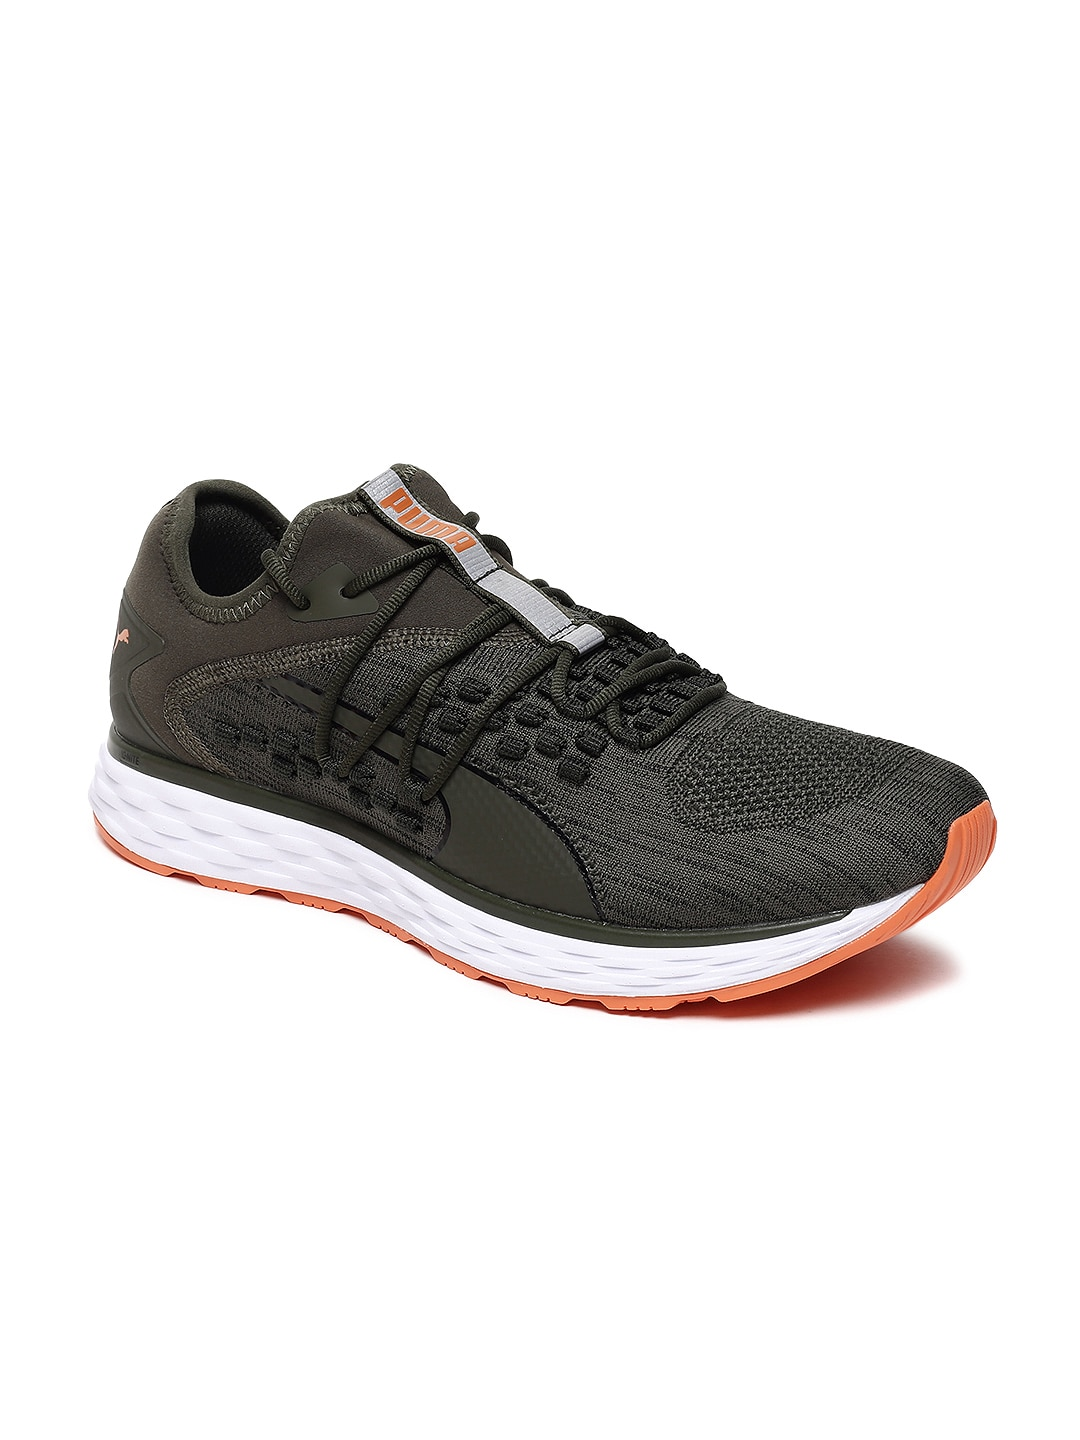 4a8accdaea47 Puma Speed Sports Shoes - Buy Puma Speed Sports Shoes online in India